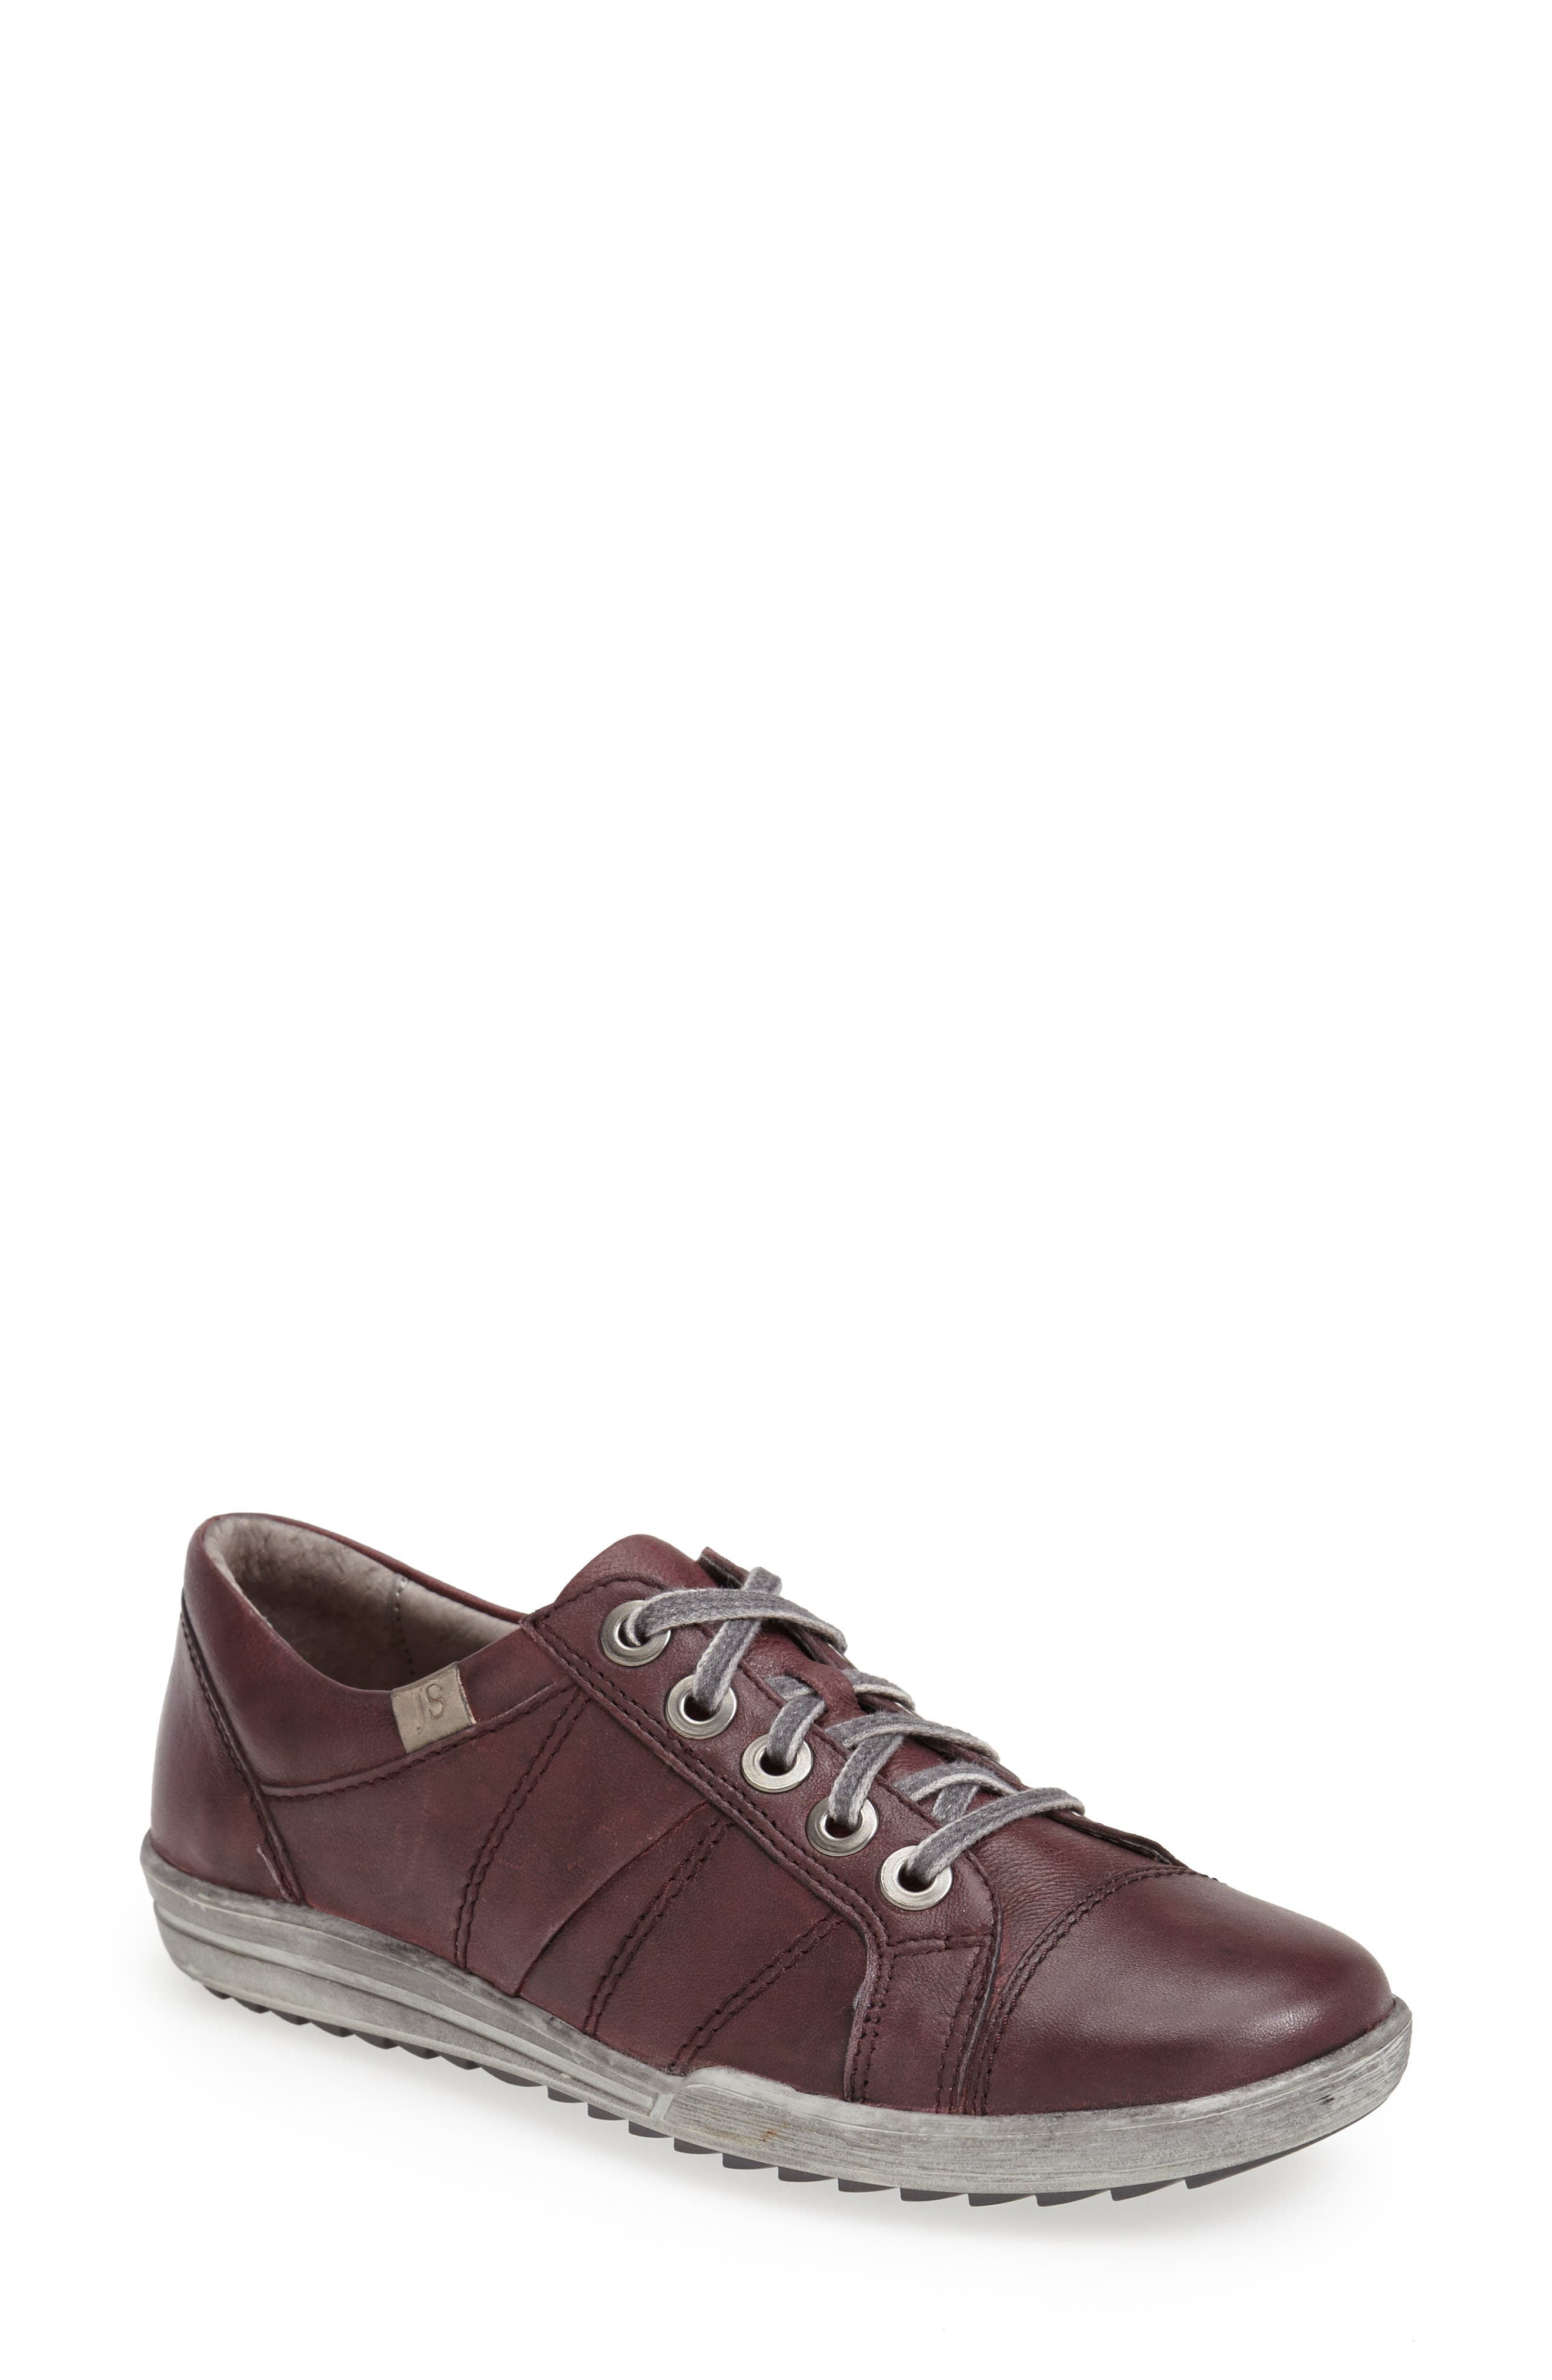 'Dany 05' Leather Sneaker,                             Alternate thumbnail 17, color,